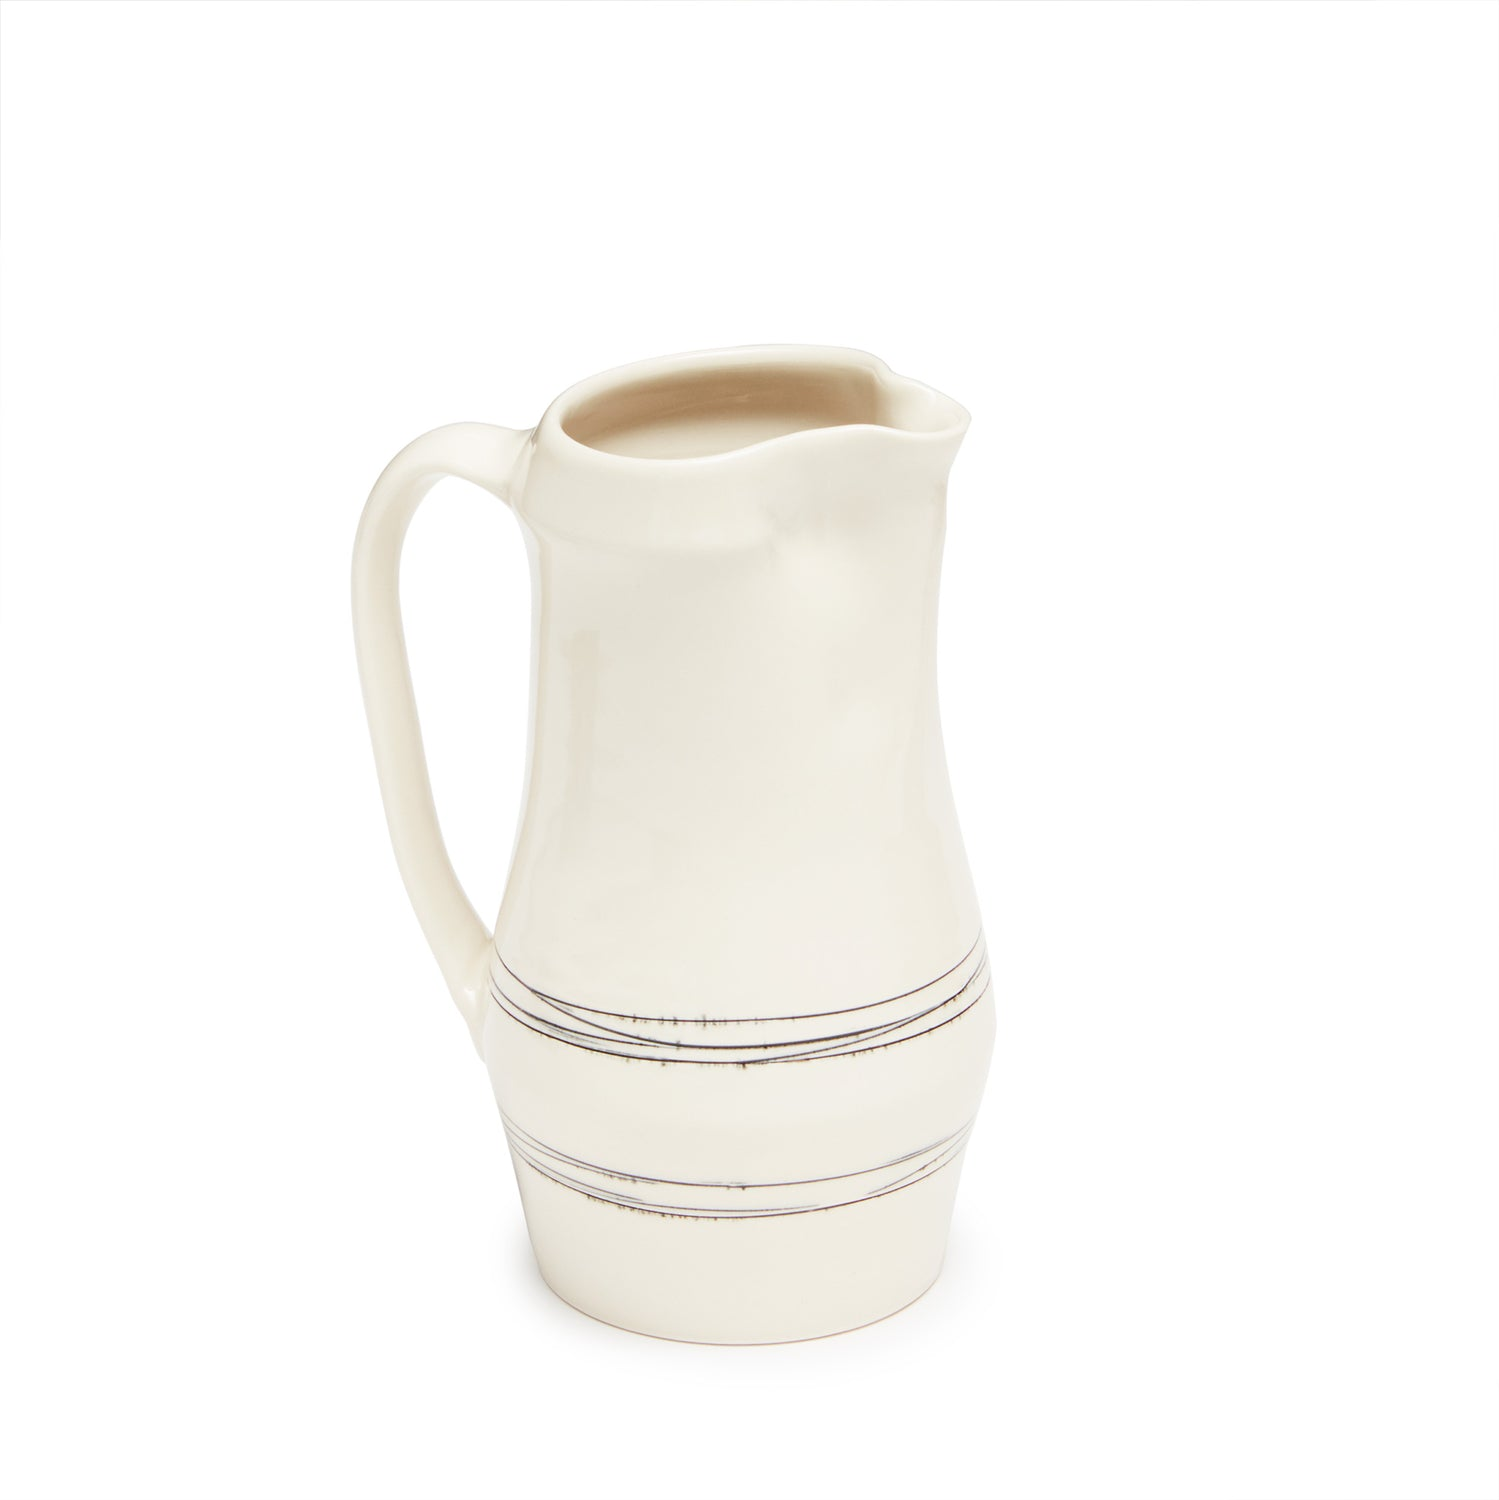 Ltd. Edition Pitcher - Linea